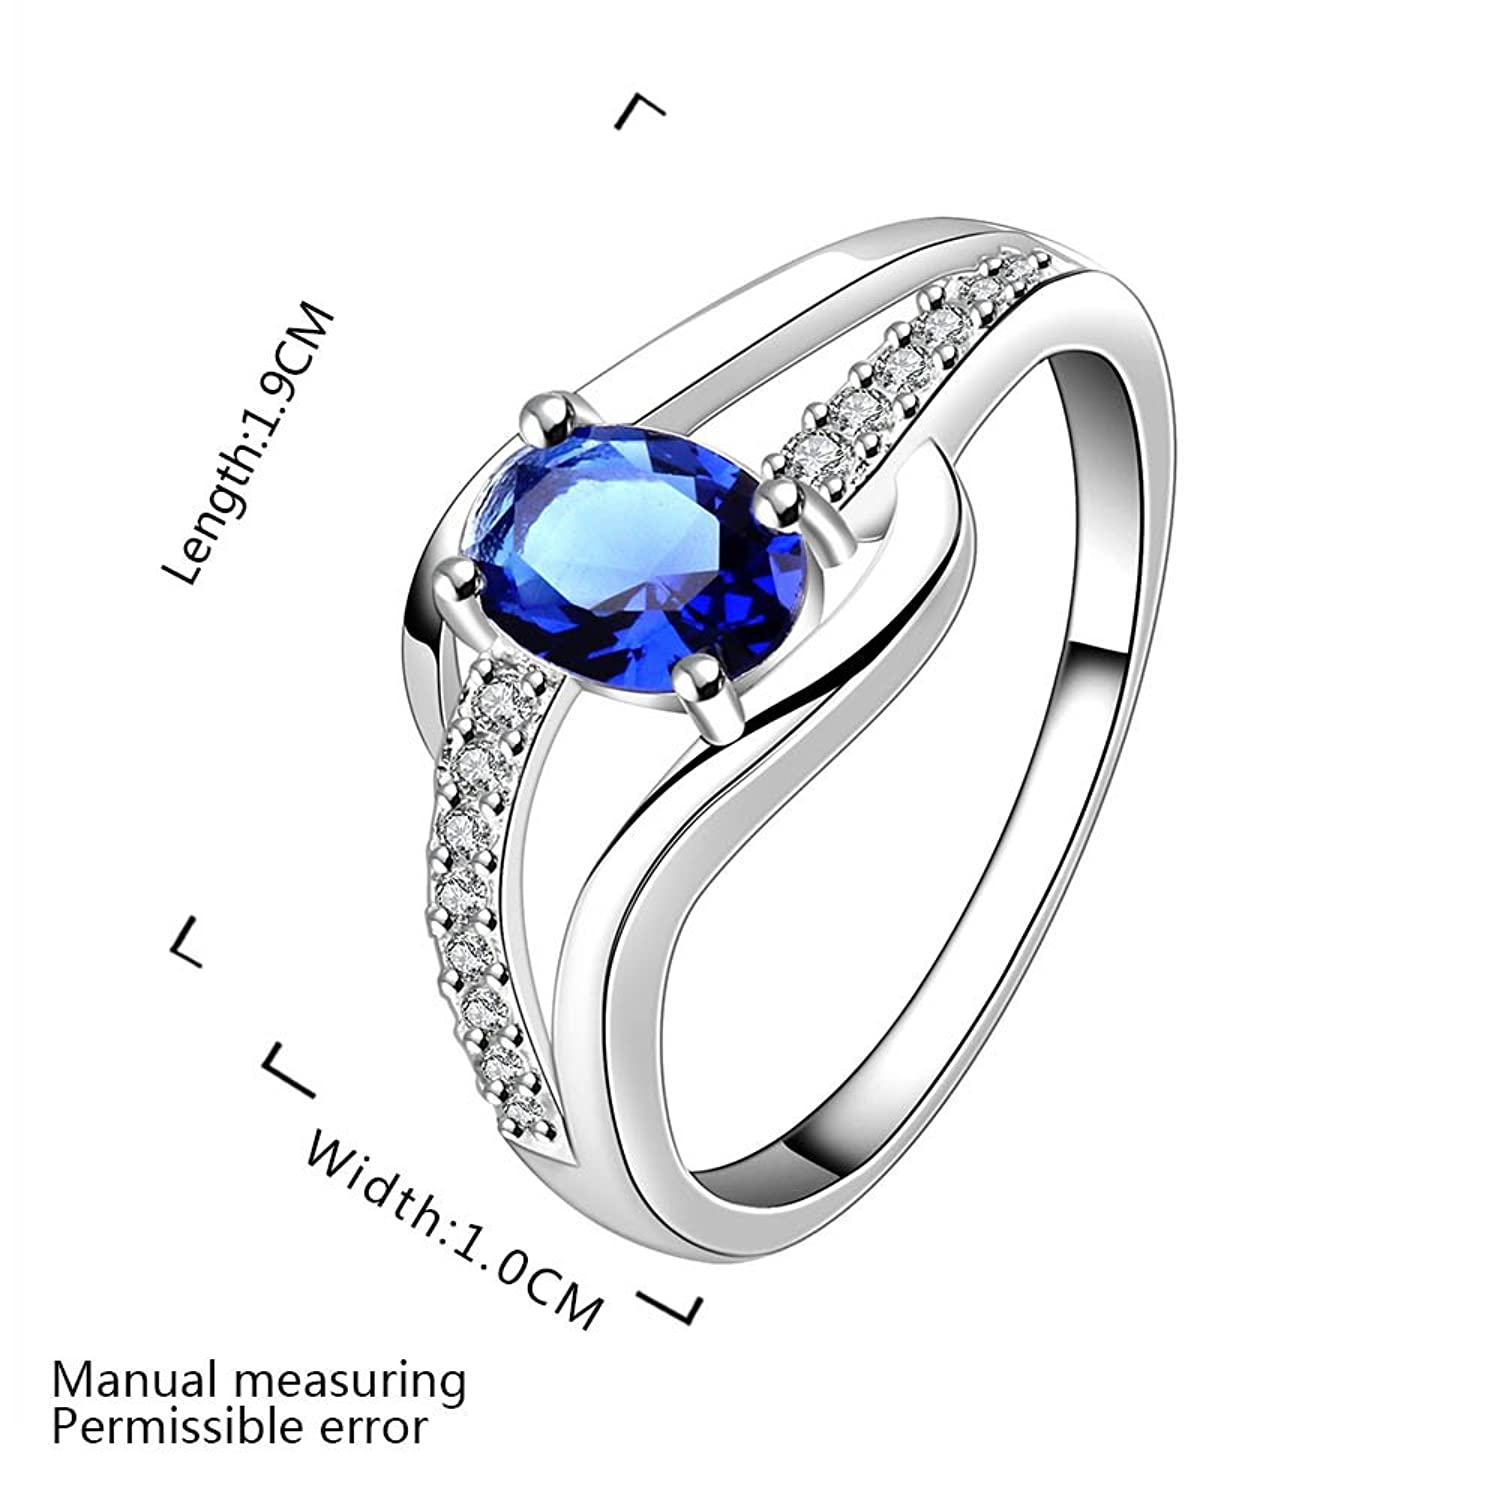 royal rings of bazaar brides uk news best the engagement blue